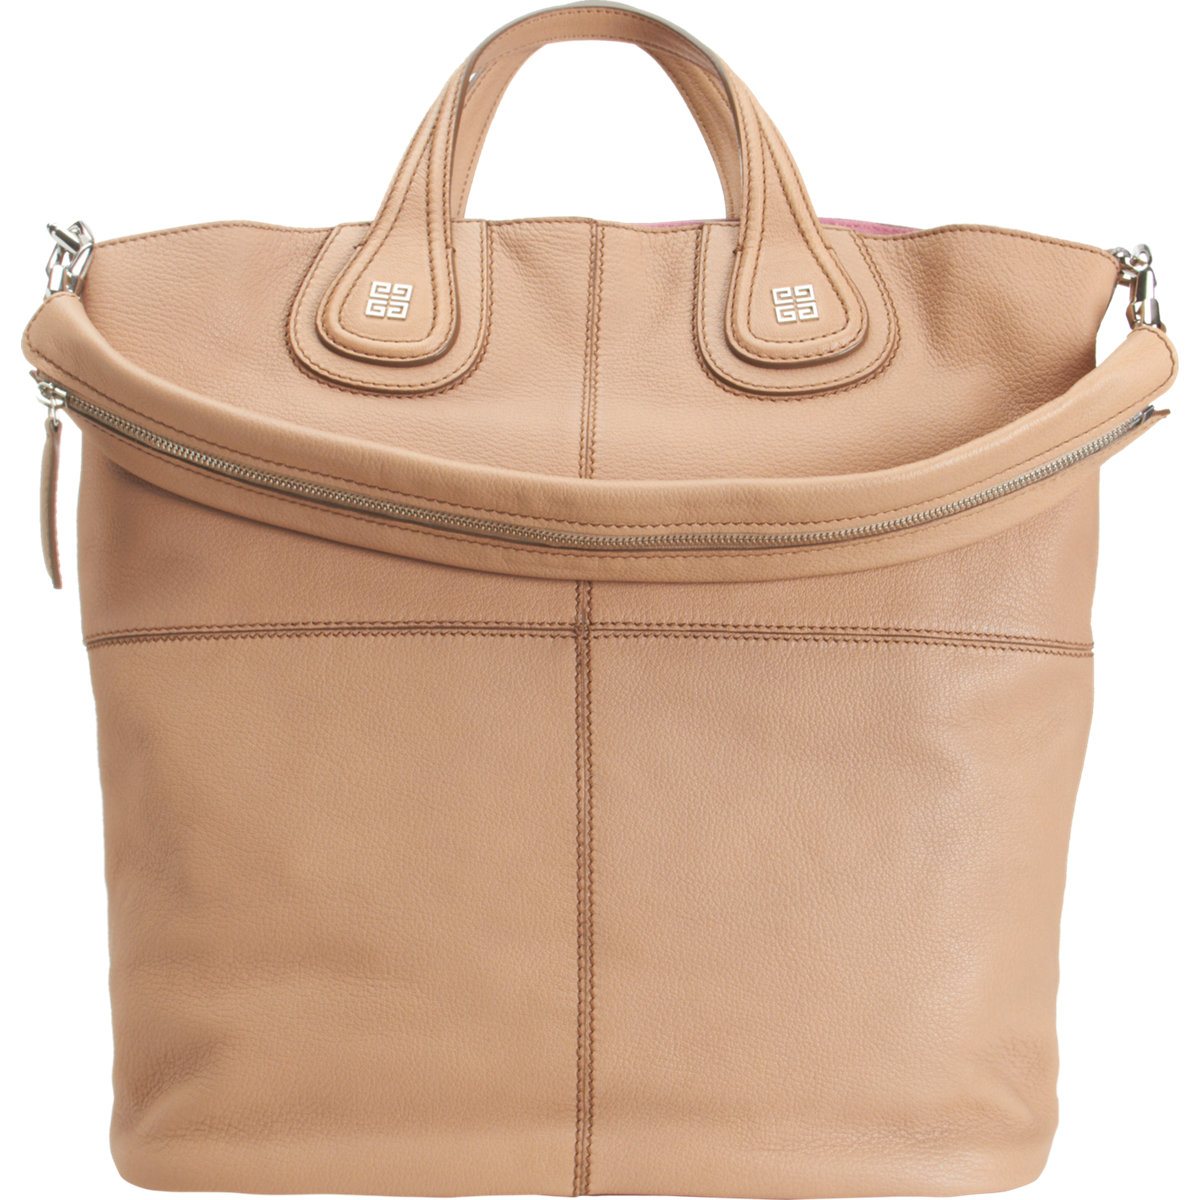 1cfe09362f Givenchy Nightingale Shopper Tote in Pink - Lyst